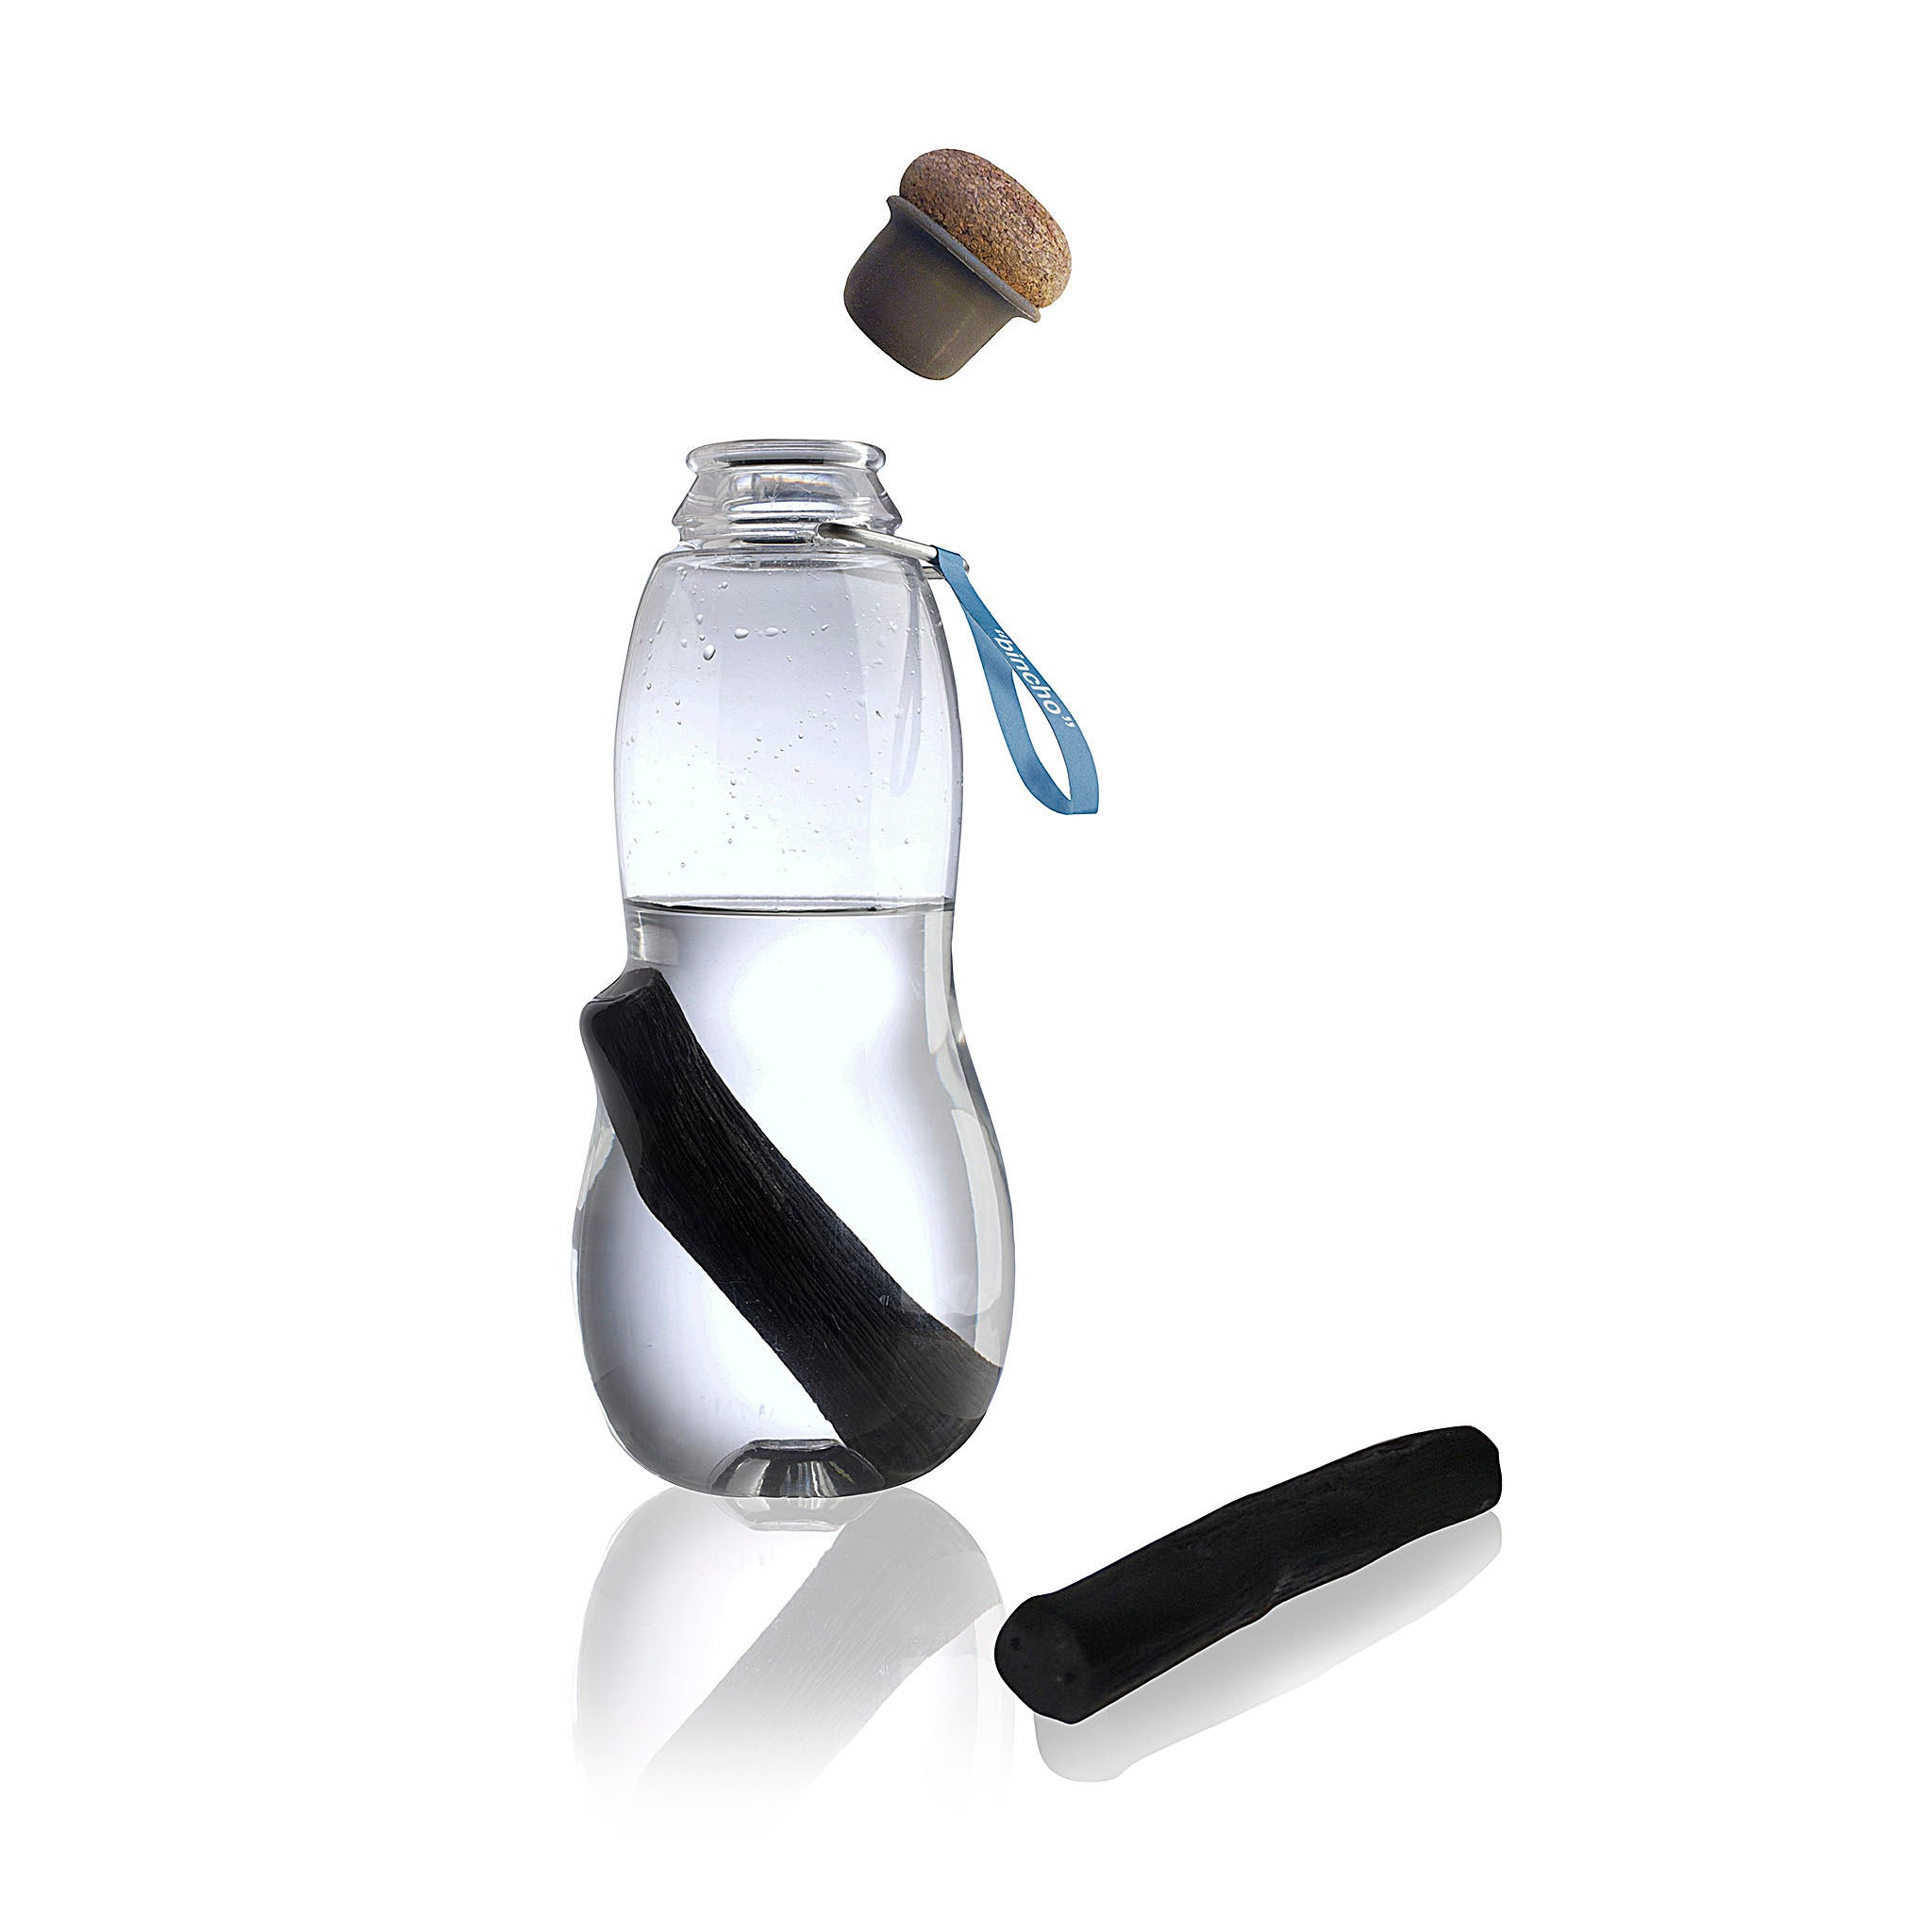 Black + Blum's Eau Good water bottle with charcoal filter.